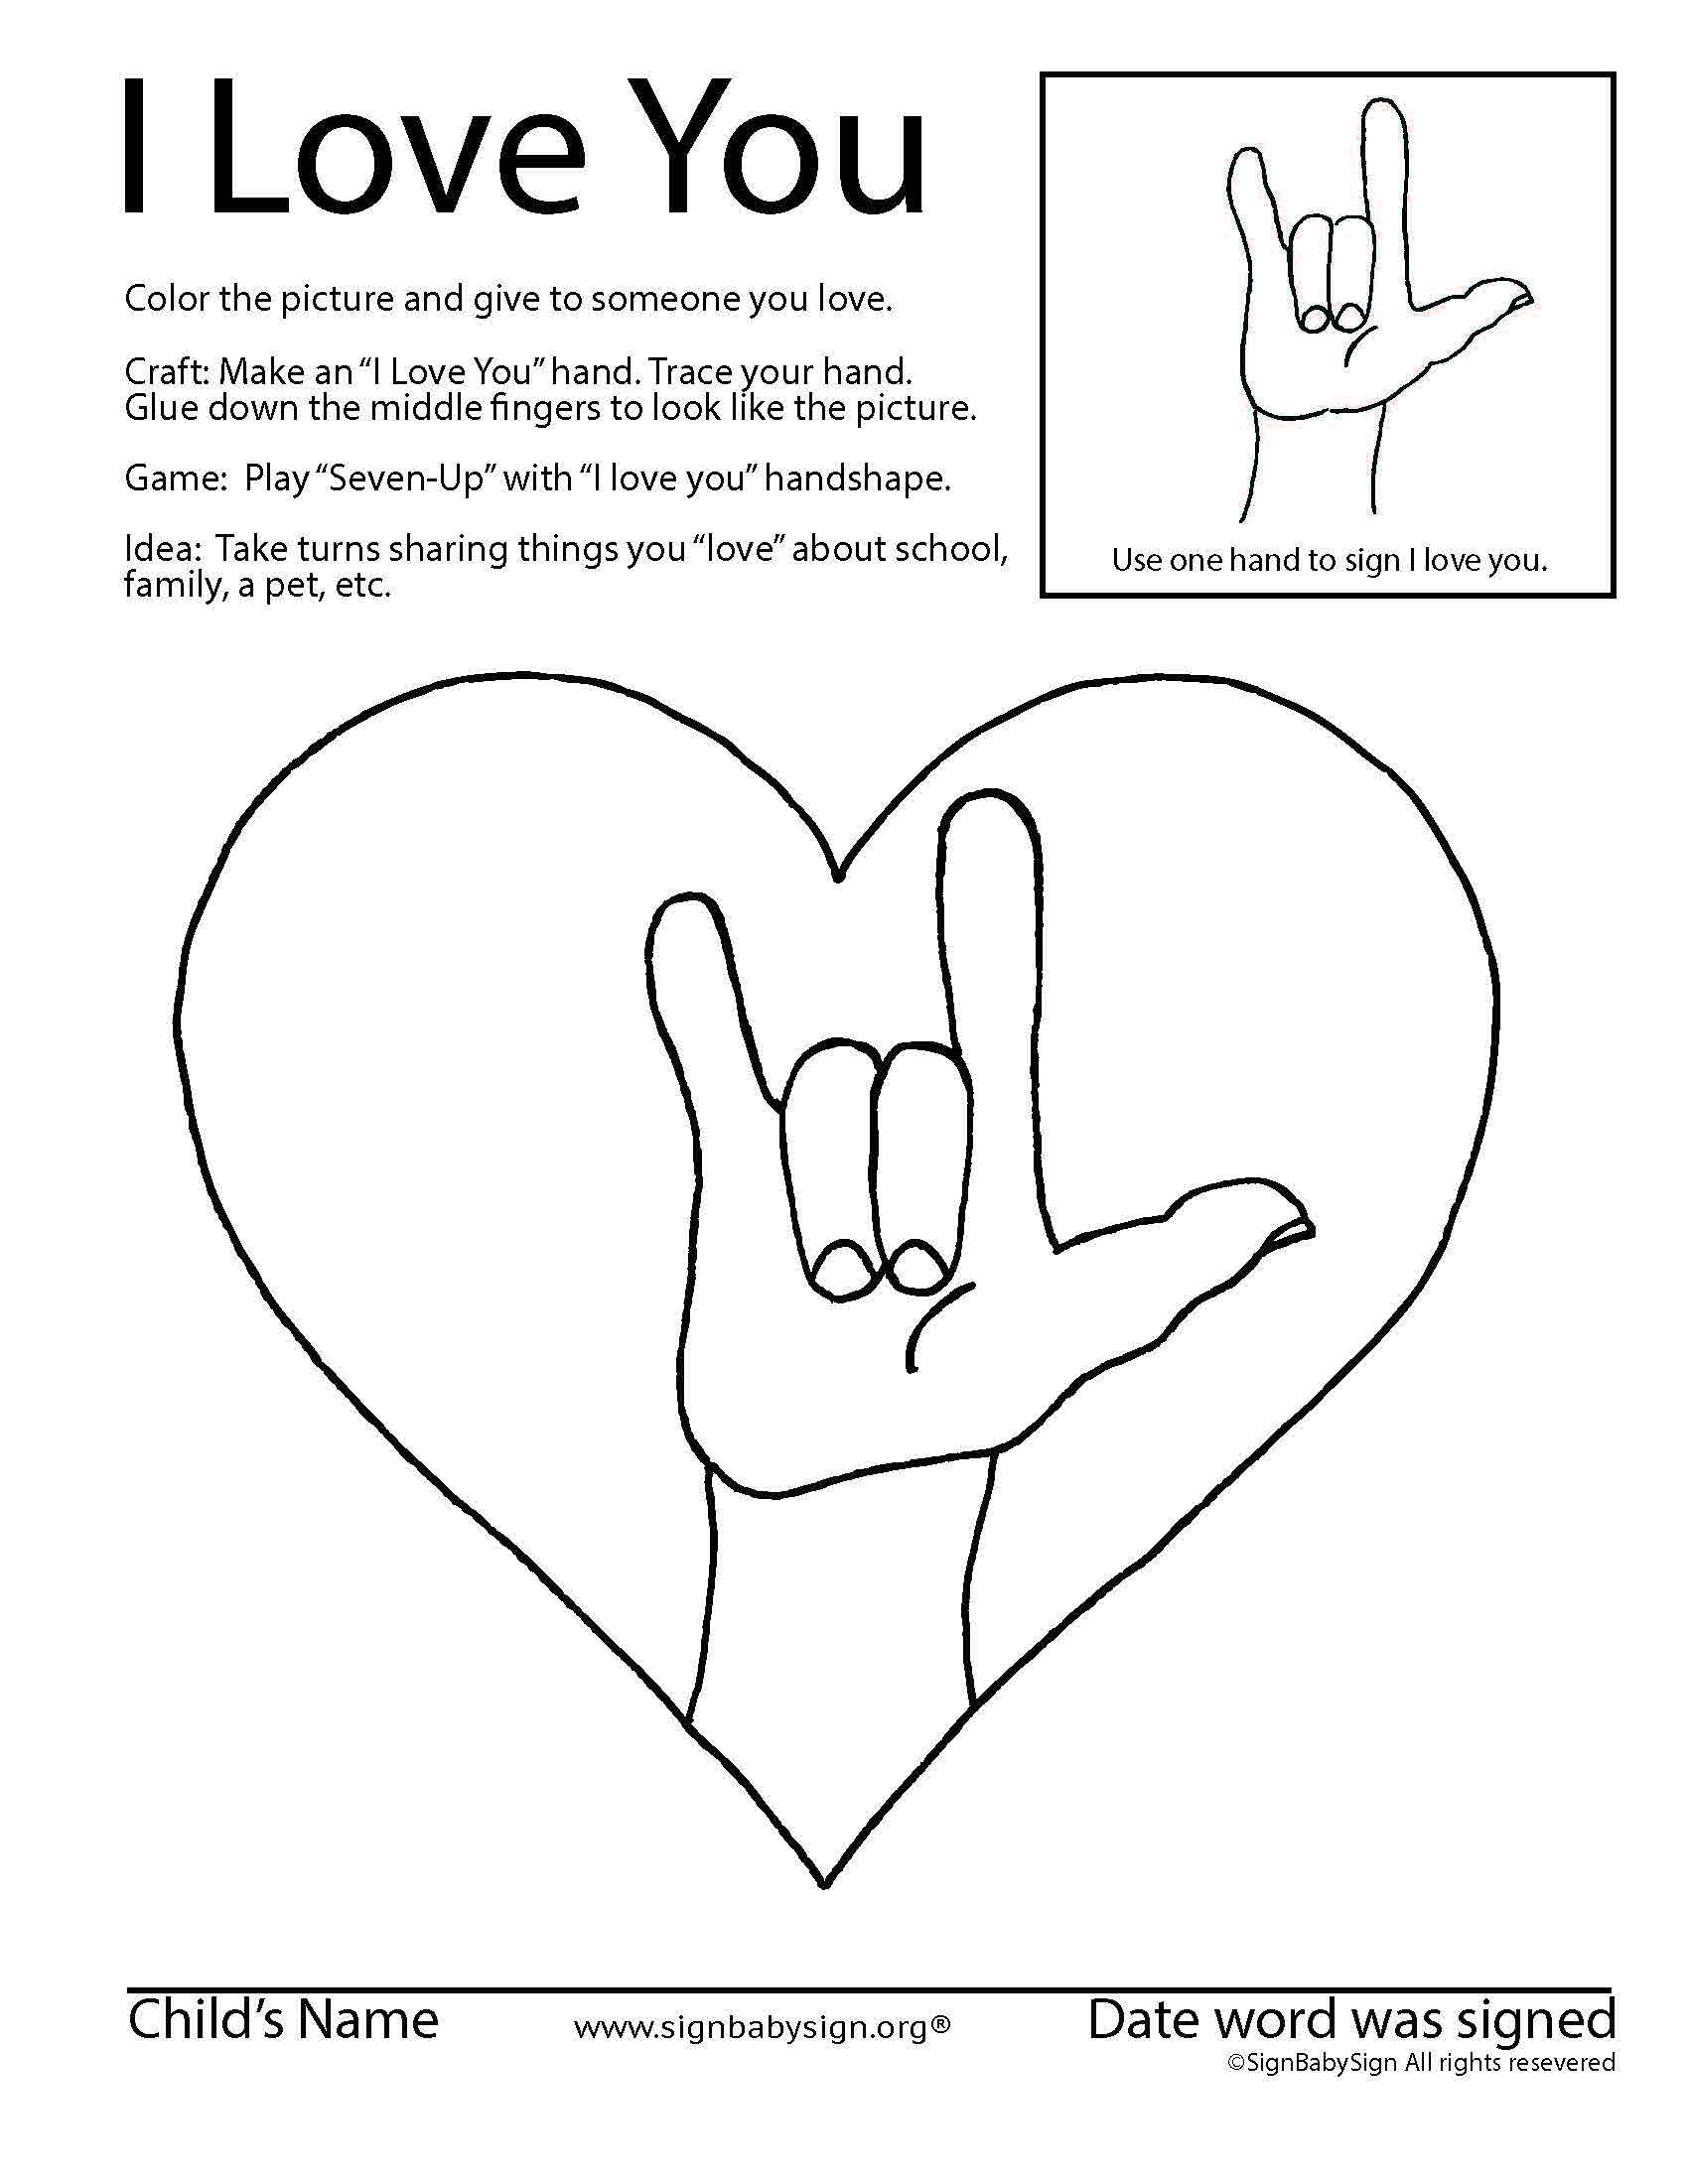 Asl Coloring Activity Sheet For Preschool And Elementary School Great For Valentines Or All Year R Language Worksheets Sign Language For Kids Sign Language Kindergartenworksheets asl coloring pages p